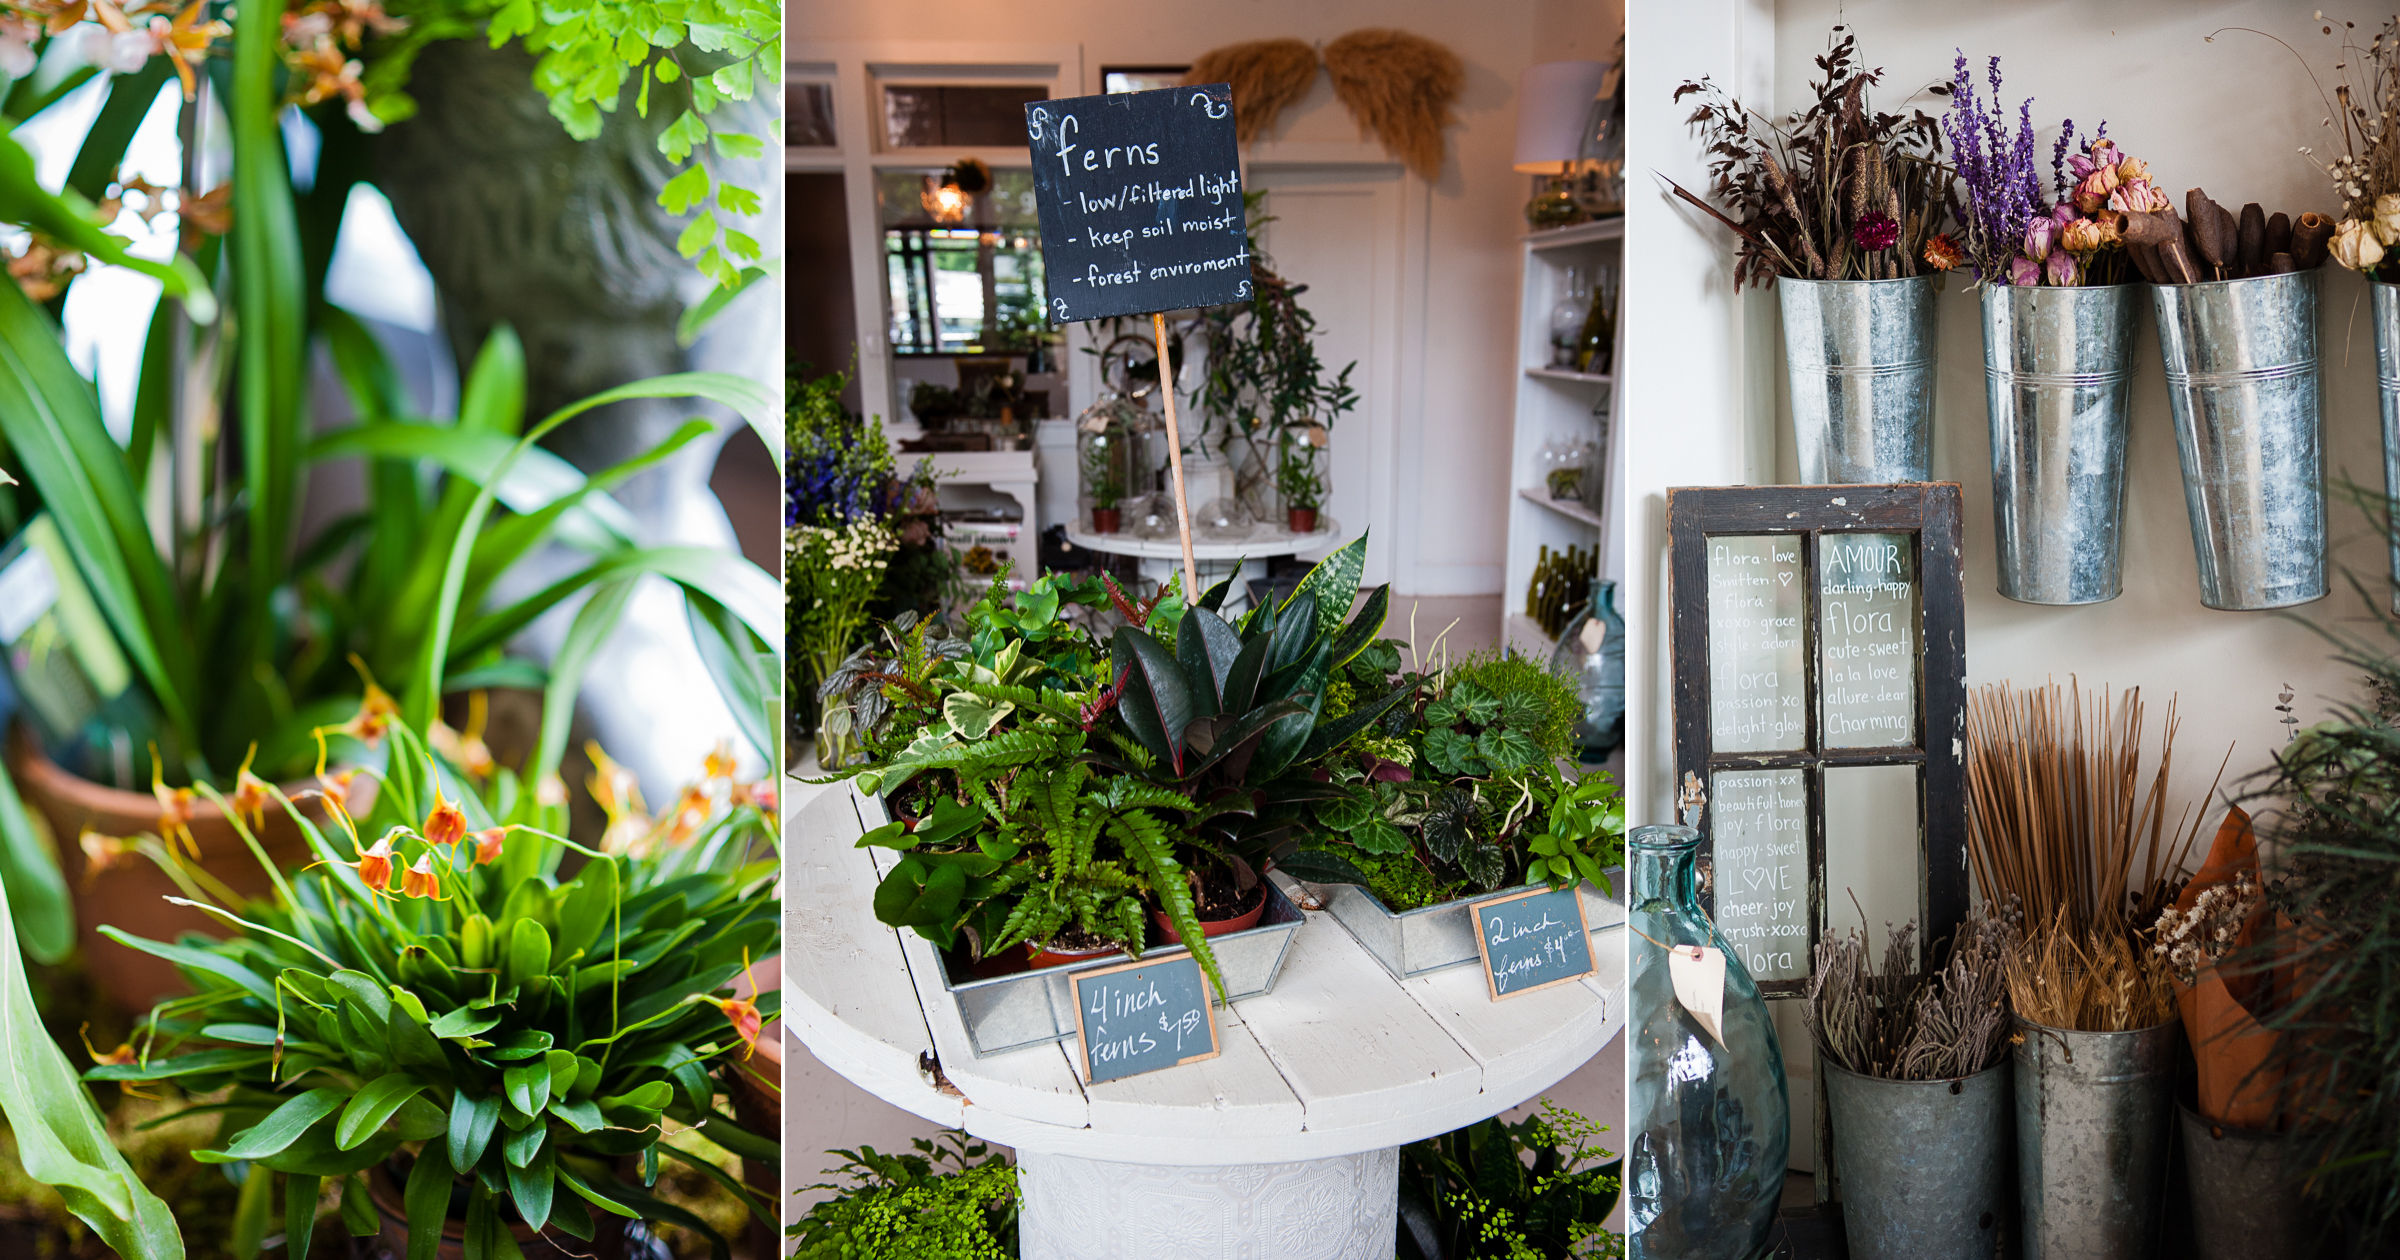 3 images of floras gorgeous storefront where plants and flowers are everywhere